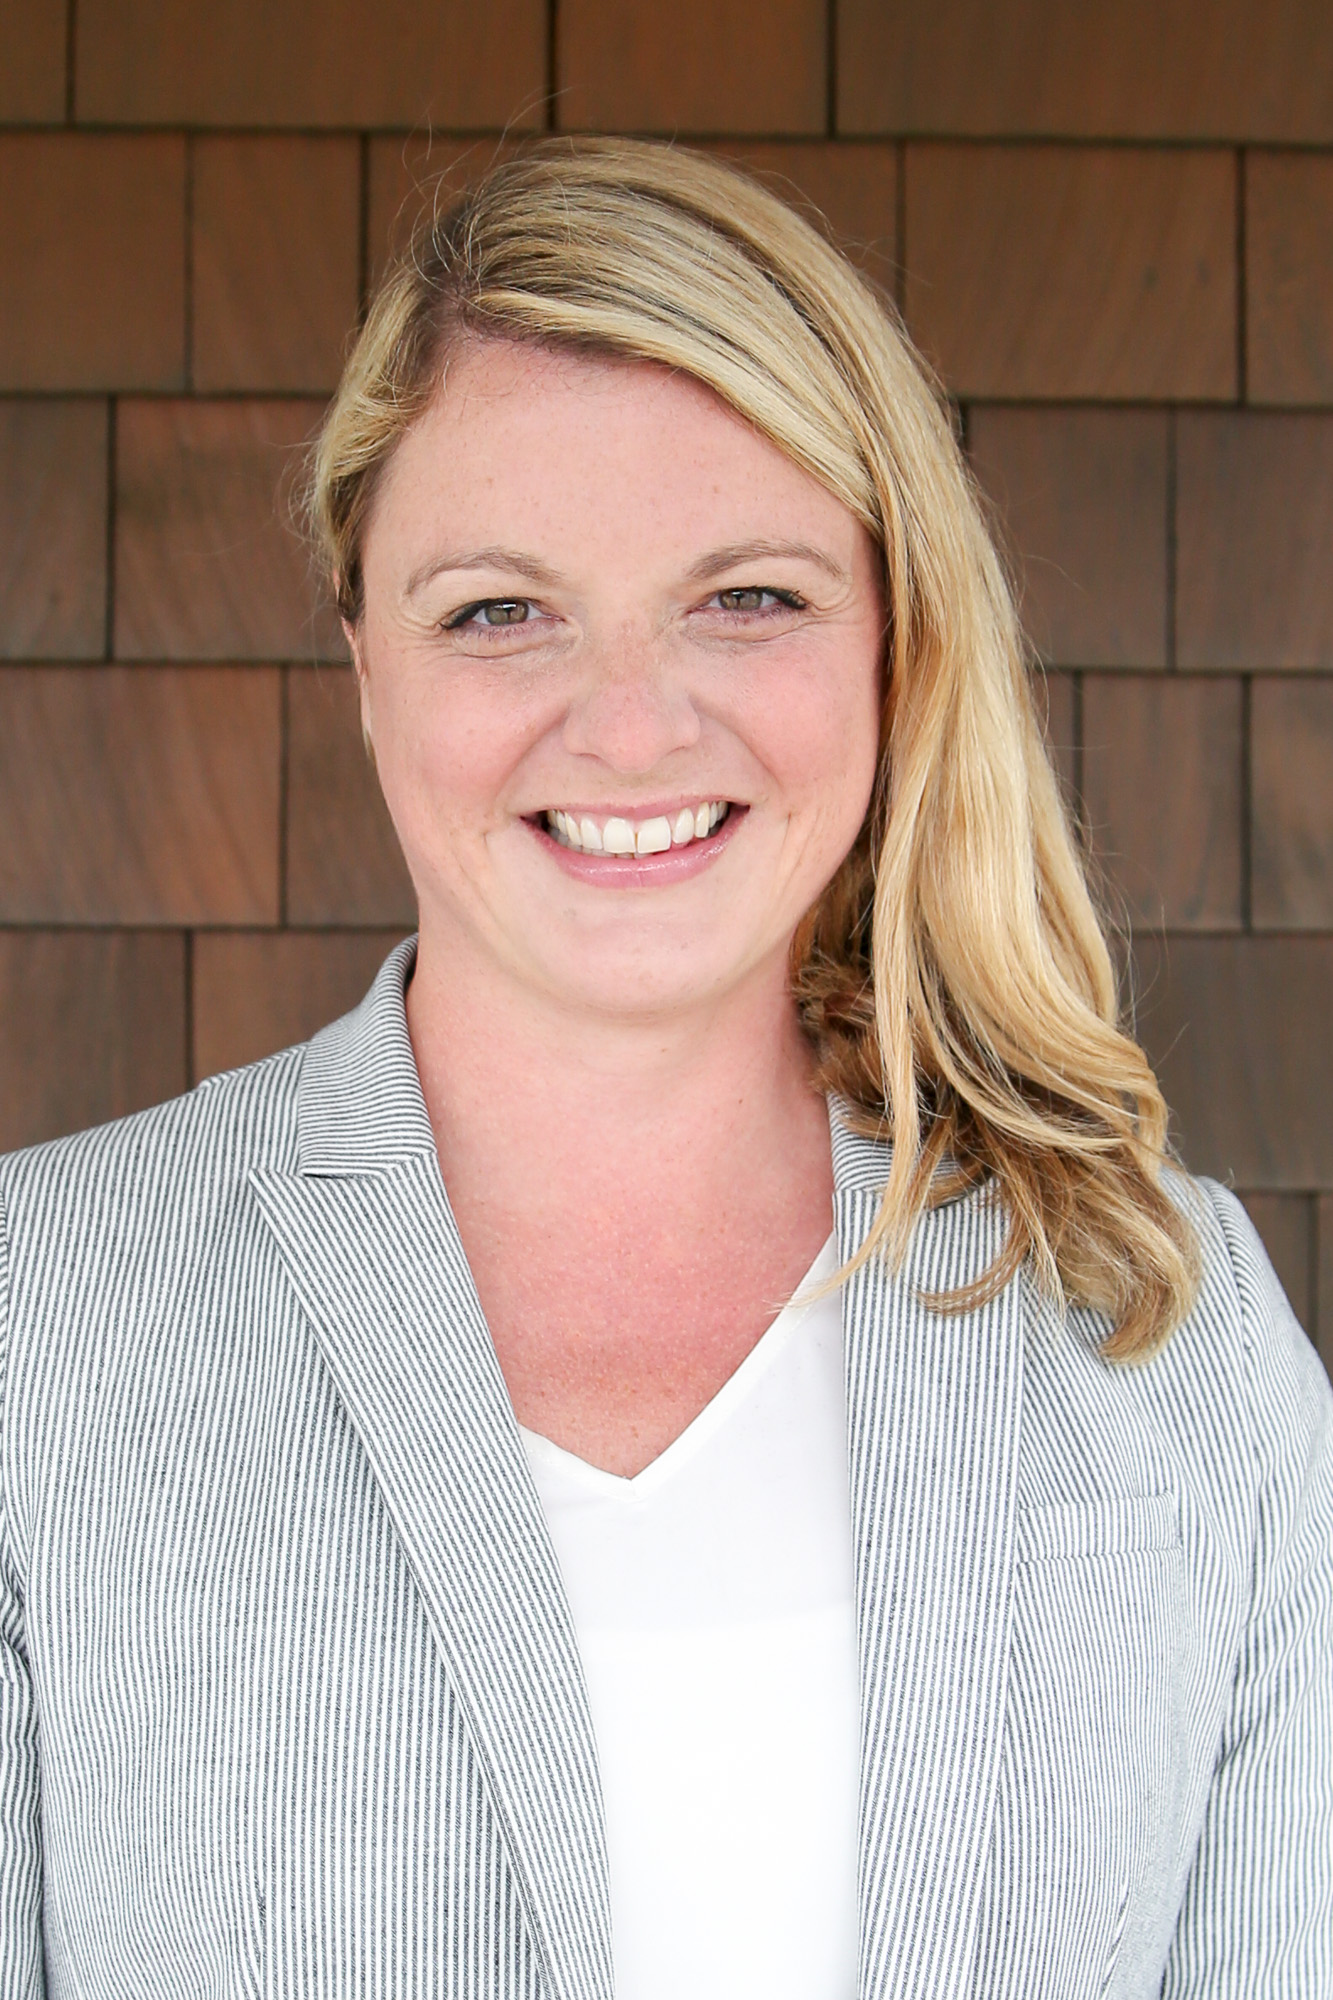 Meagan Andrews, Head of Lower School, 1 year at MTS